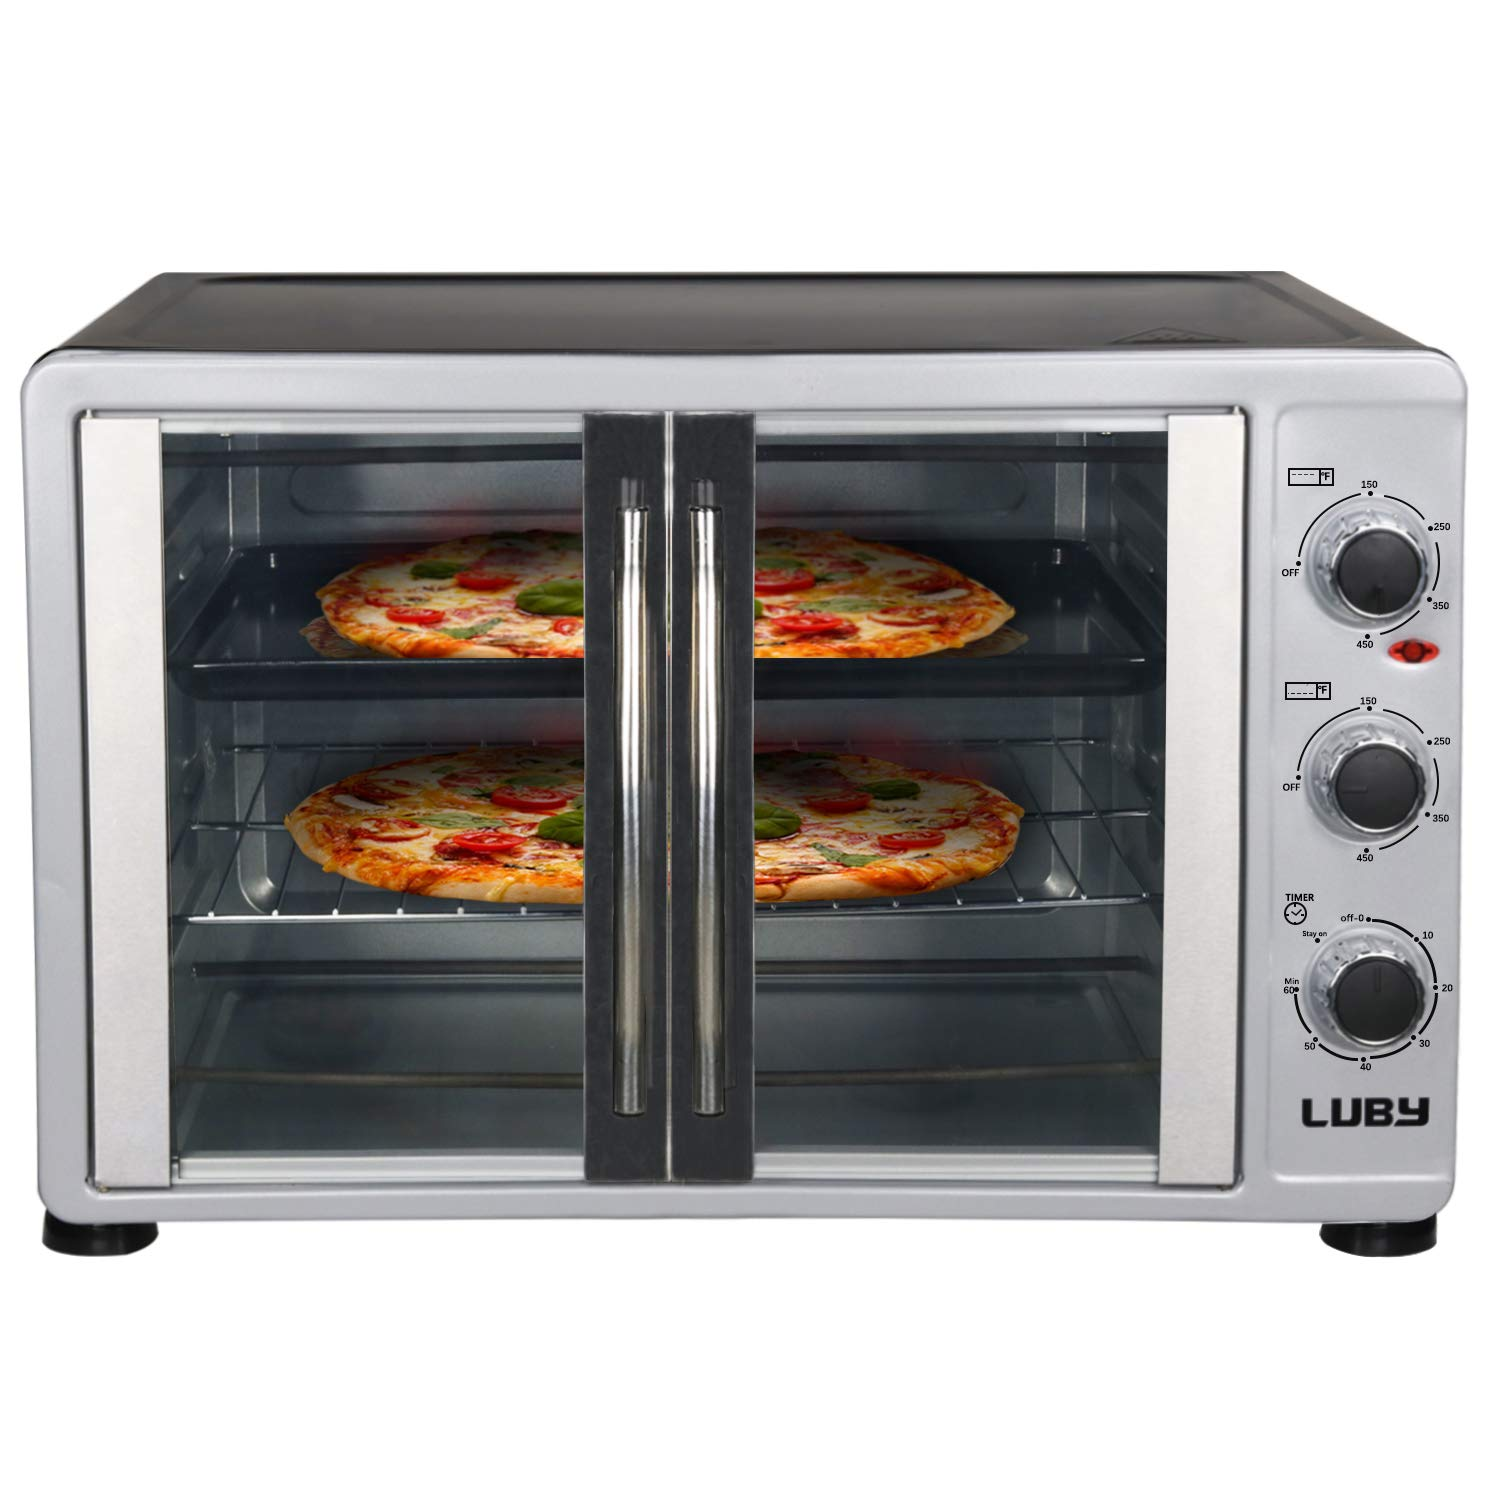 Luby Extra Large 55L toaster oven, 16 Slices,14'' pizza,20lb Turkey, White,Stainless Steel